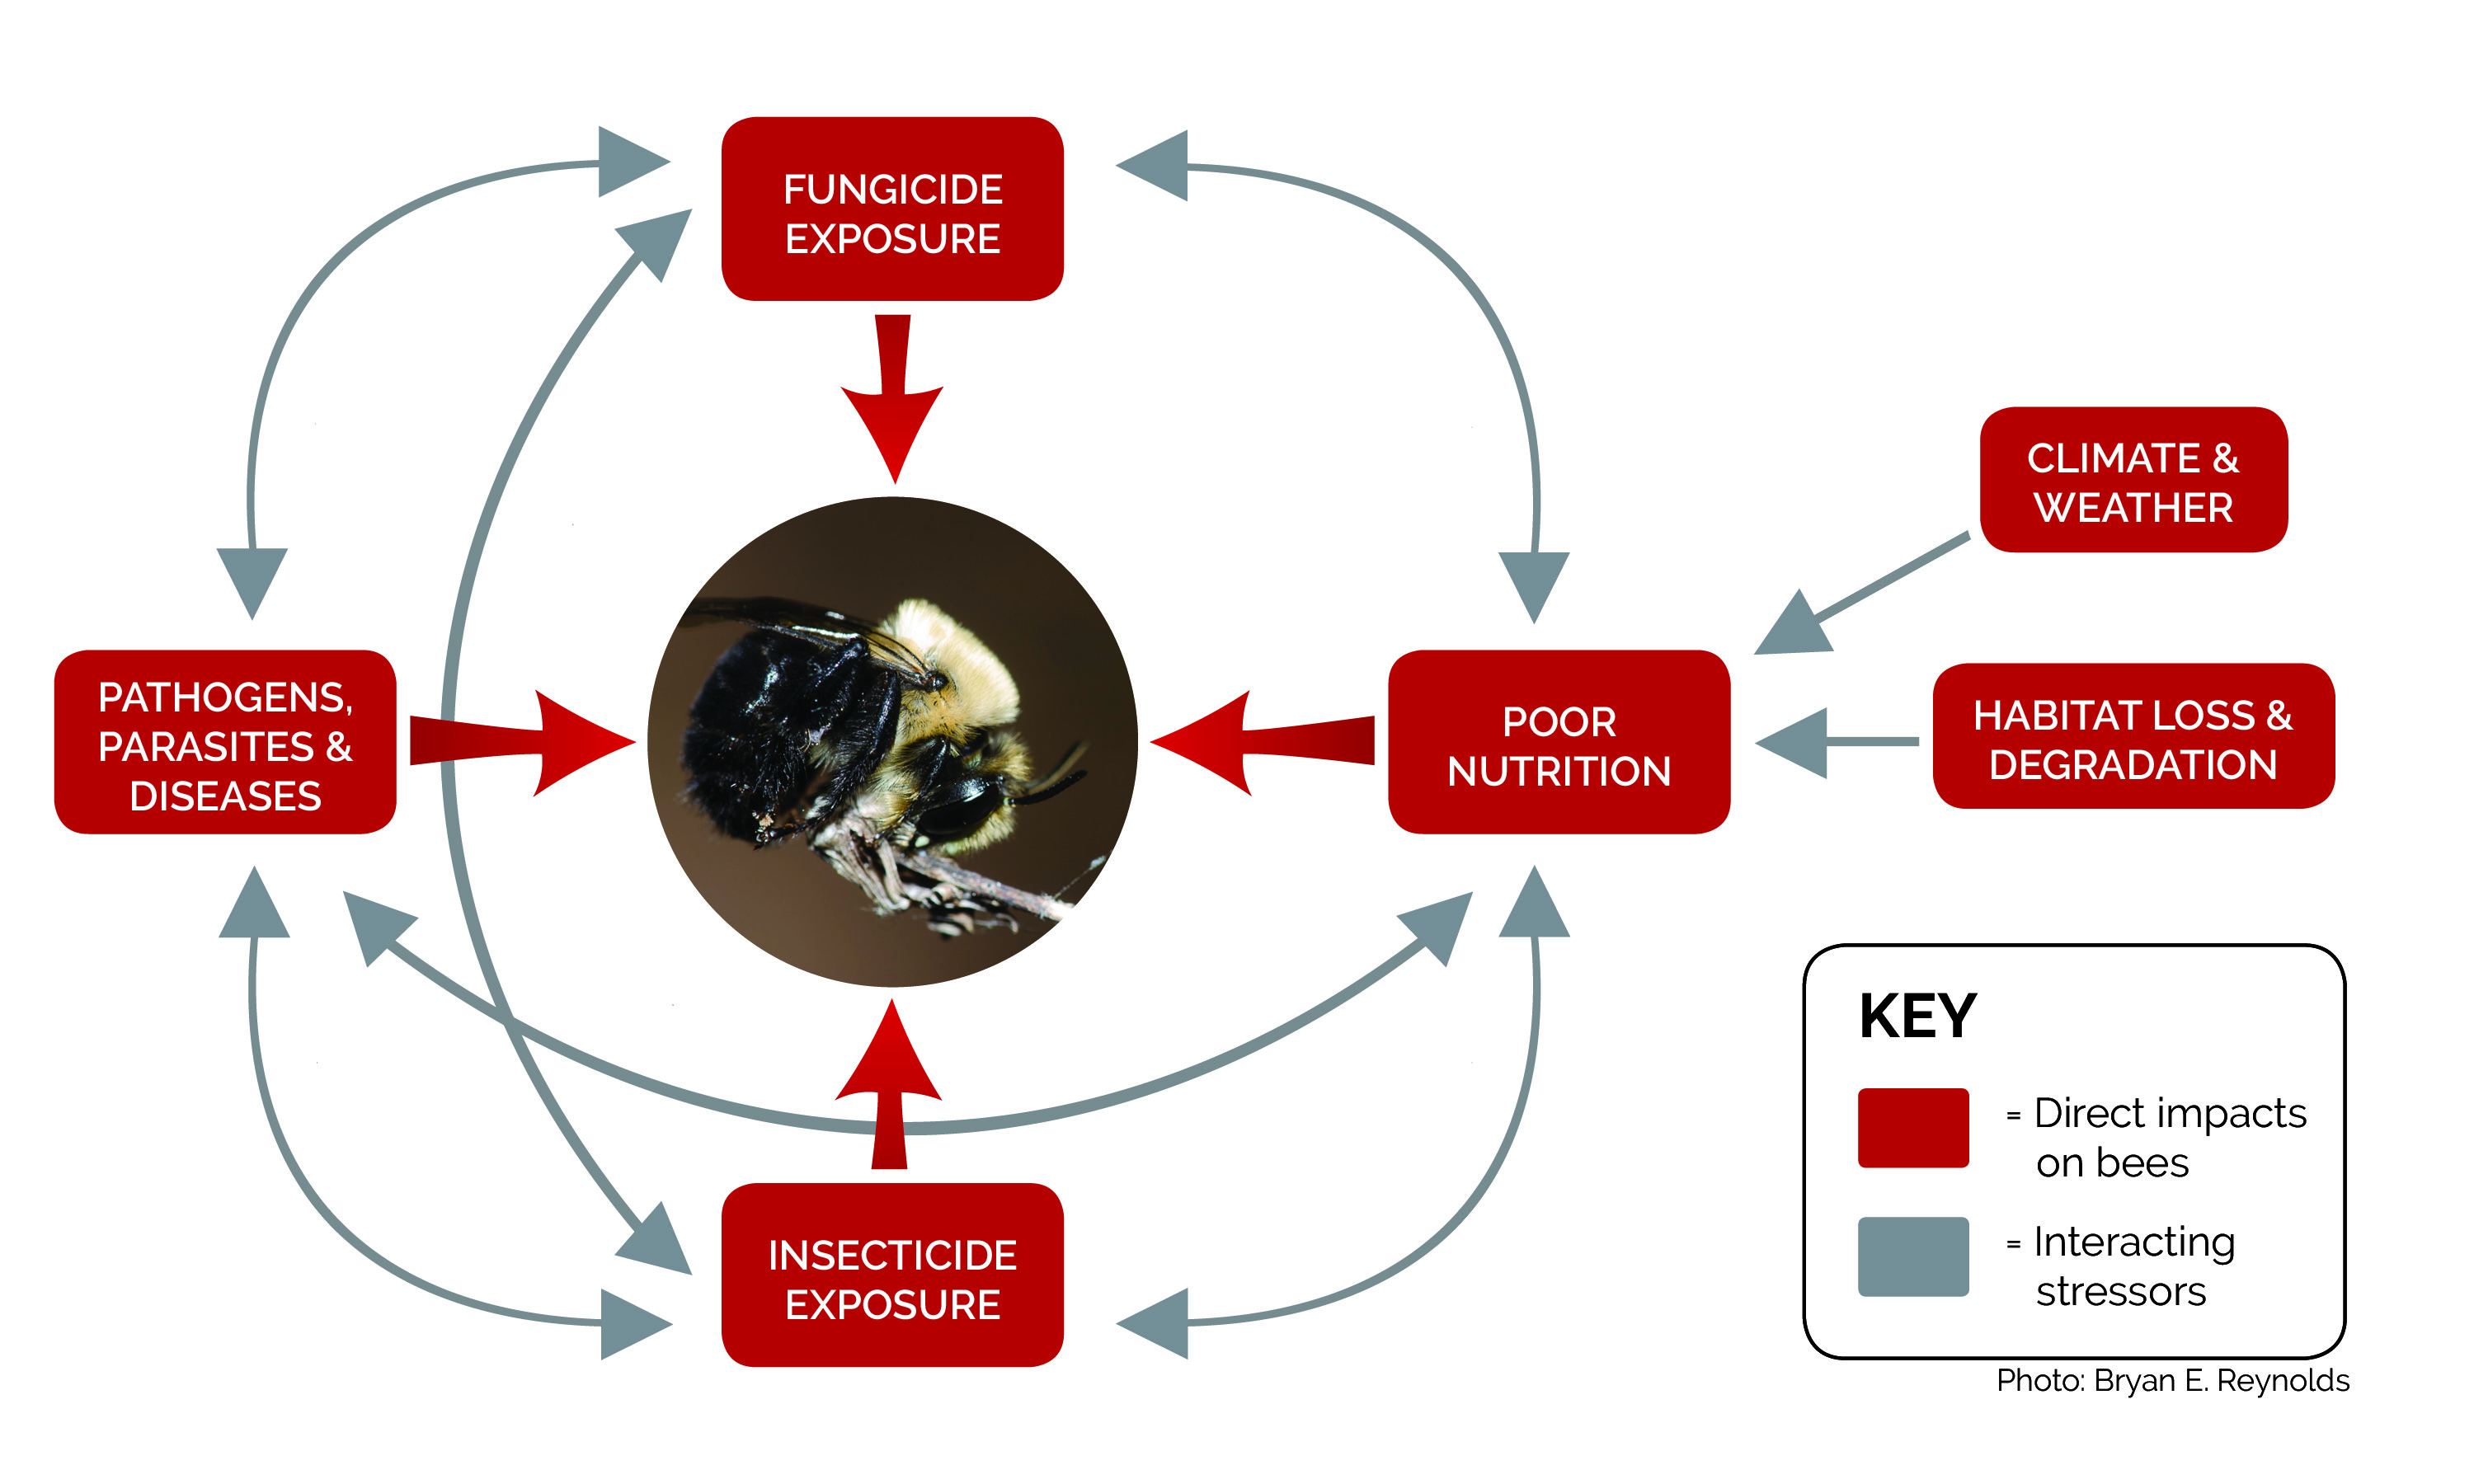 This diagram shows various interacting stressors that can impact bees and other pollinators, including fungicides.